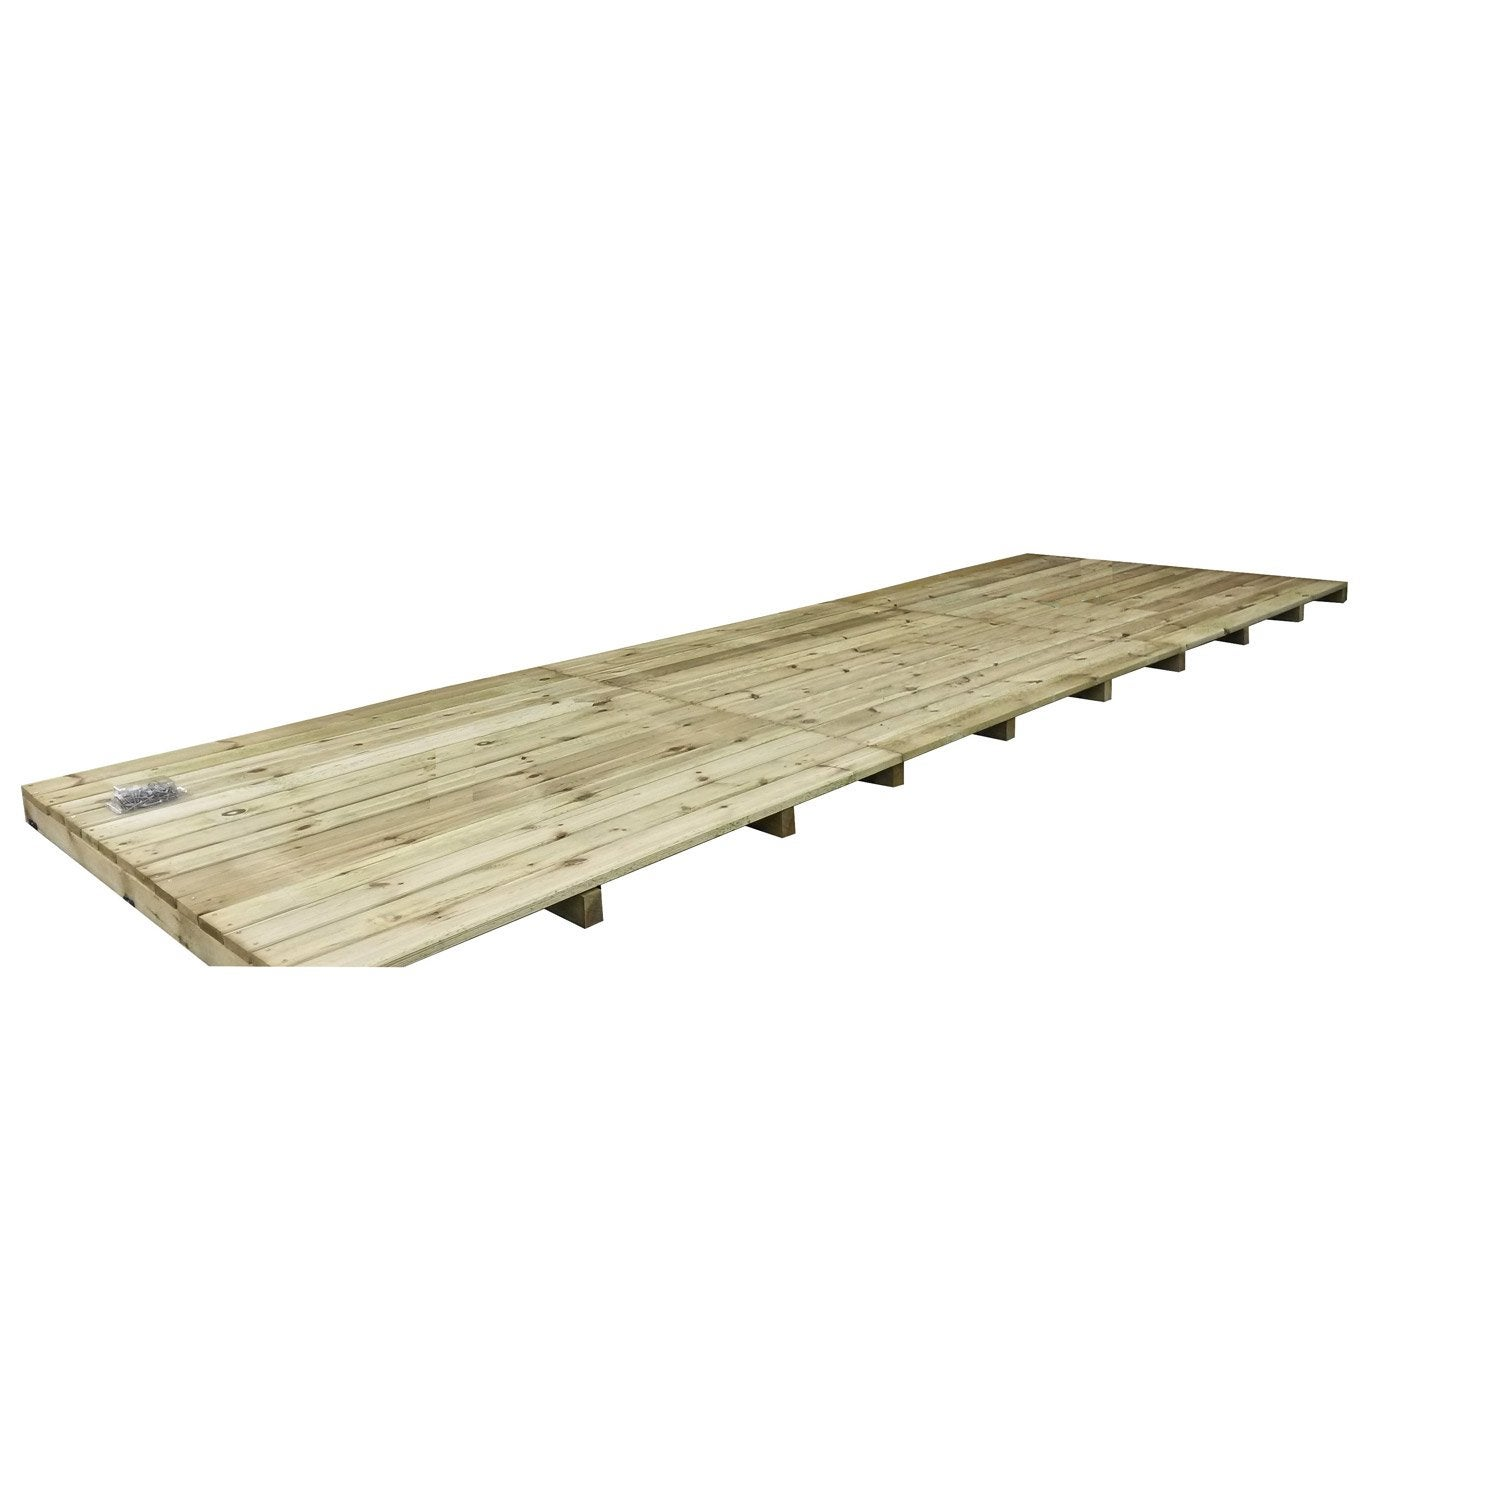 Terrasse bois pin, naturel, L180 x l12 cm x Ep28 mm  Leroy Merlin